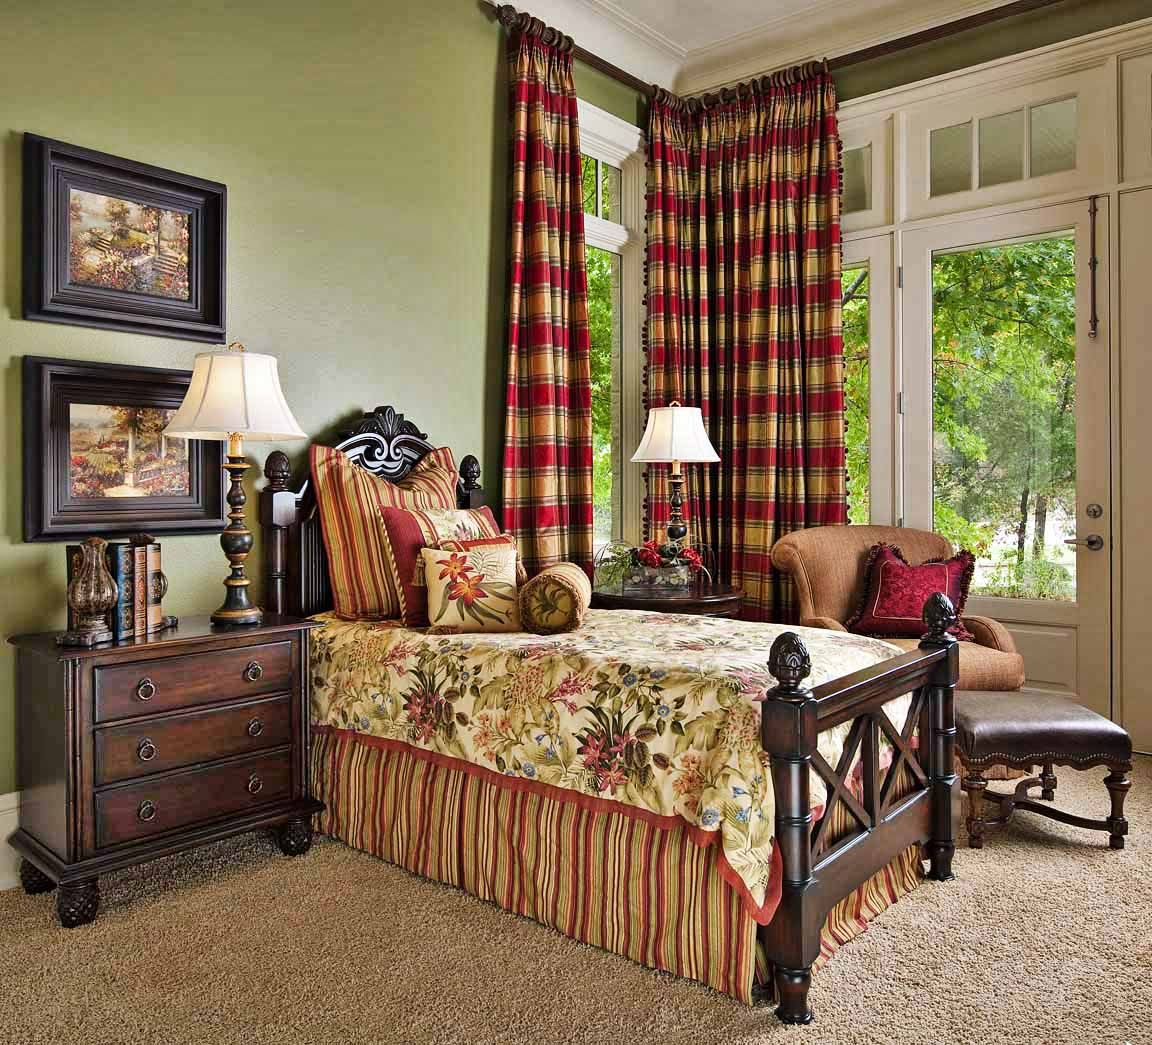 Home Interior Decorator Dallas | Interior Decorating Bedrooms ... on dark cherry furniture, bedroom makeover ideas, mathis brothers furniture, bedroom colors with dark furniture, best color with cherry furniture, white wood furniture, nursery ideas with dark furniture, dark blue bedroom furniture, cape cod furniture, bedroom ideas with twin bed, home decor ideas with dark furniture, color schemes for dark furniture, painting ideas with dark furniture, bedroom colors for dark furniture, bedroom with antique wrought iron bed, dark wood furniture, grey walls with brown leather furniture, bedroom furniture layout ideas, modern home furniture, bedroom painted furniture ideas,